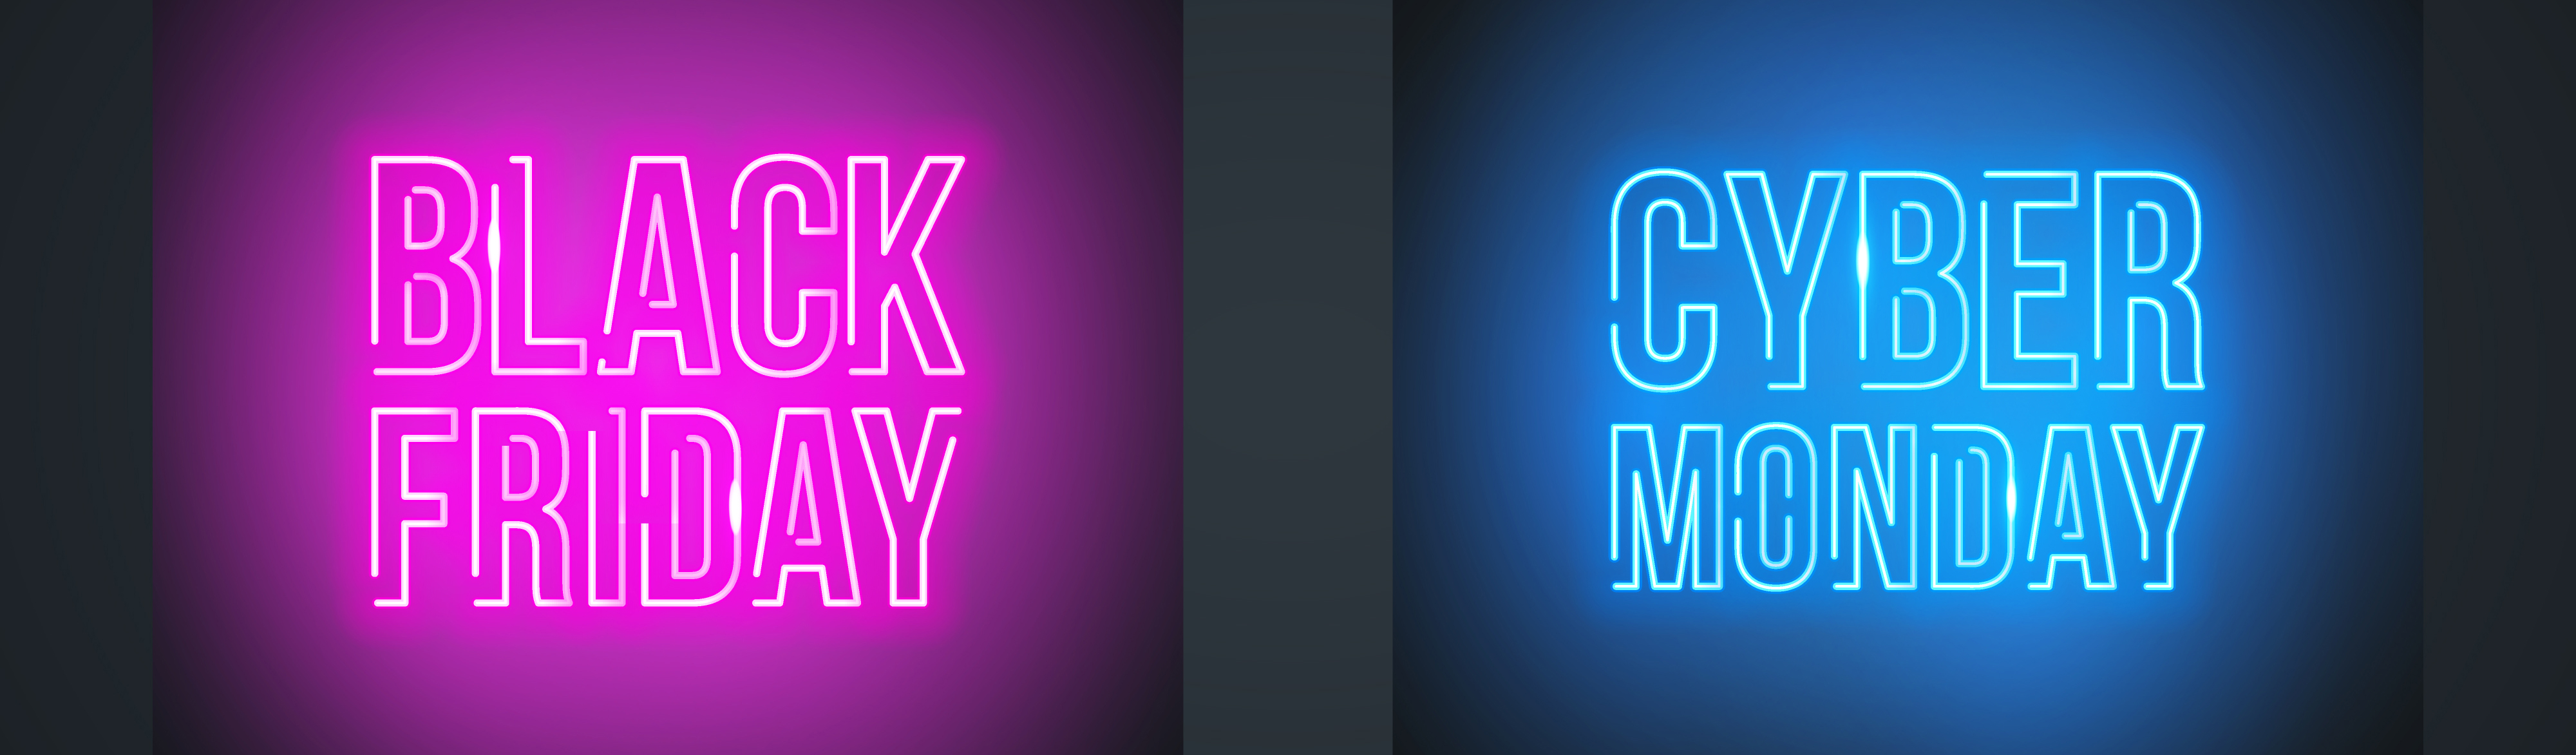 Neon light signs that say Black Friday and Cyber Monday